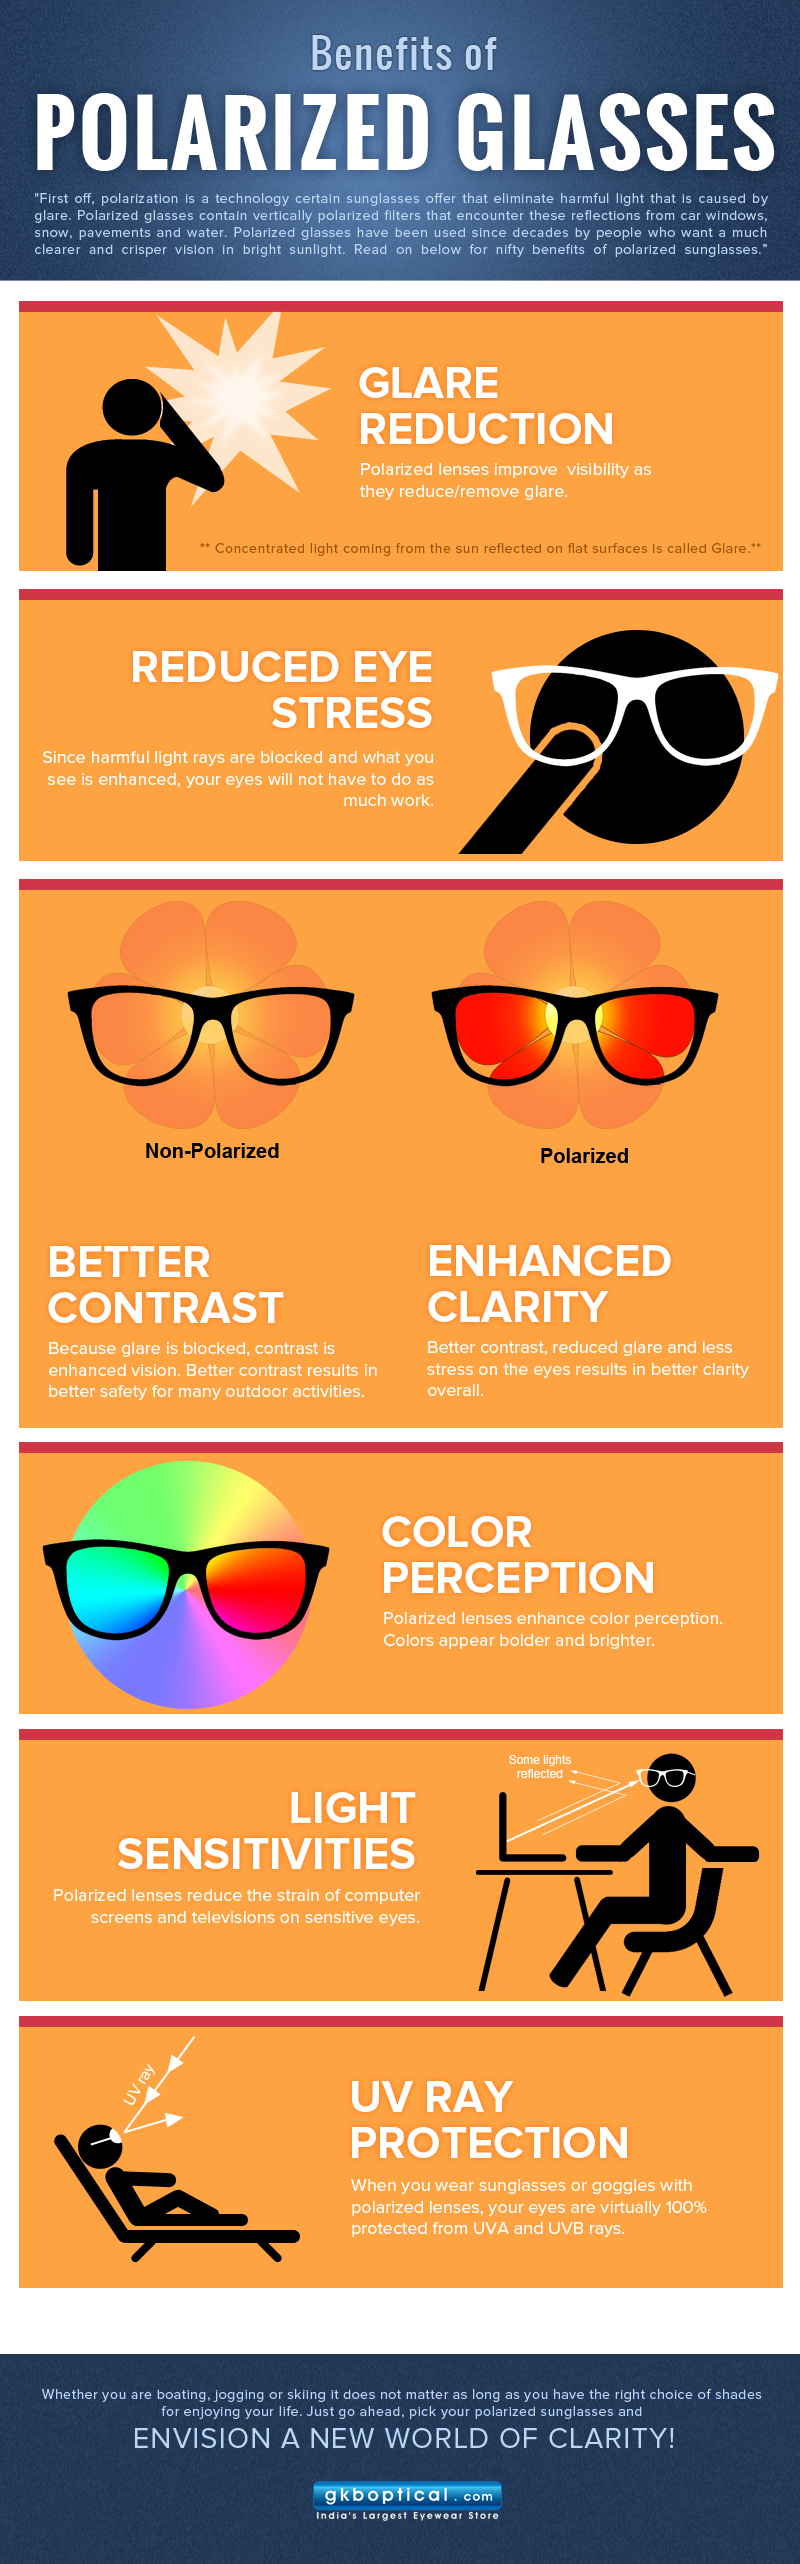 benefits-of-polarized-sunglasses_51e4de53141cb